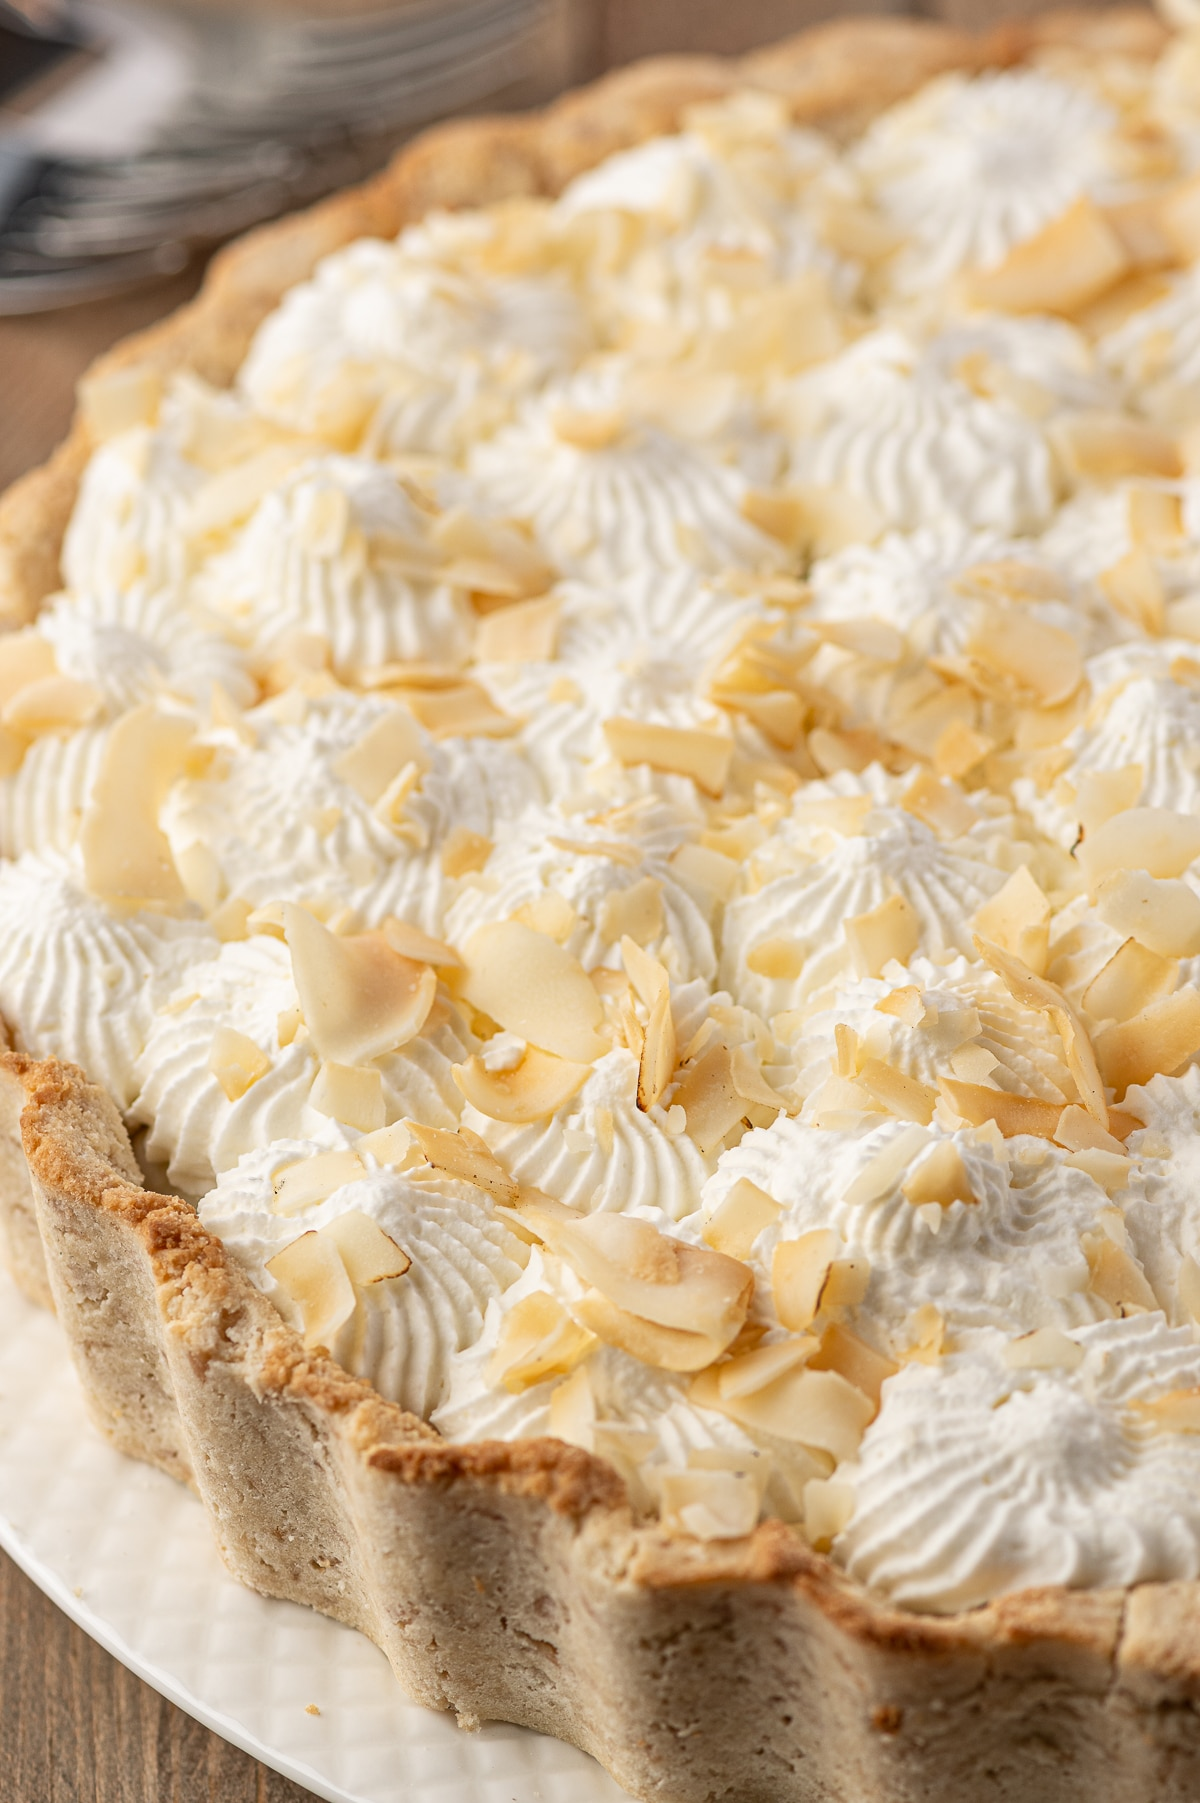 Coconut Cream Pie with ruffled crust, piped whipped cream stars and large flake toasted coconut.